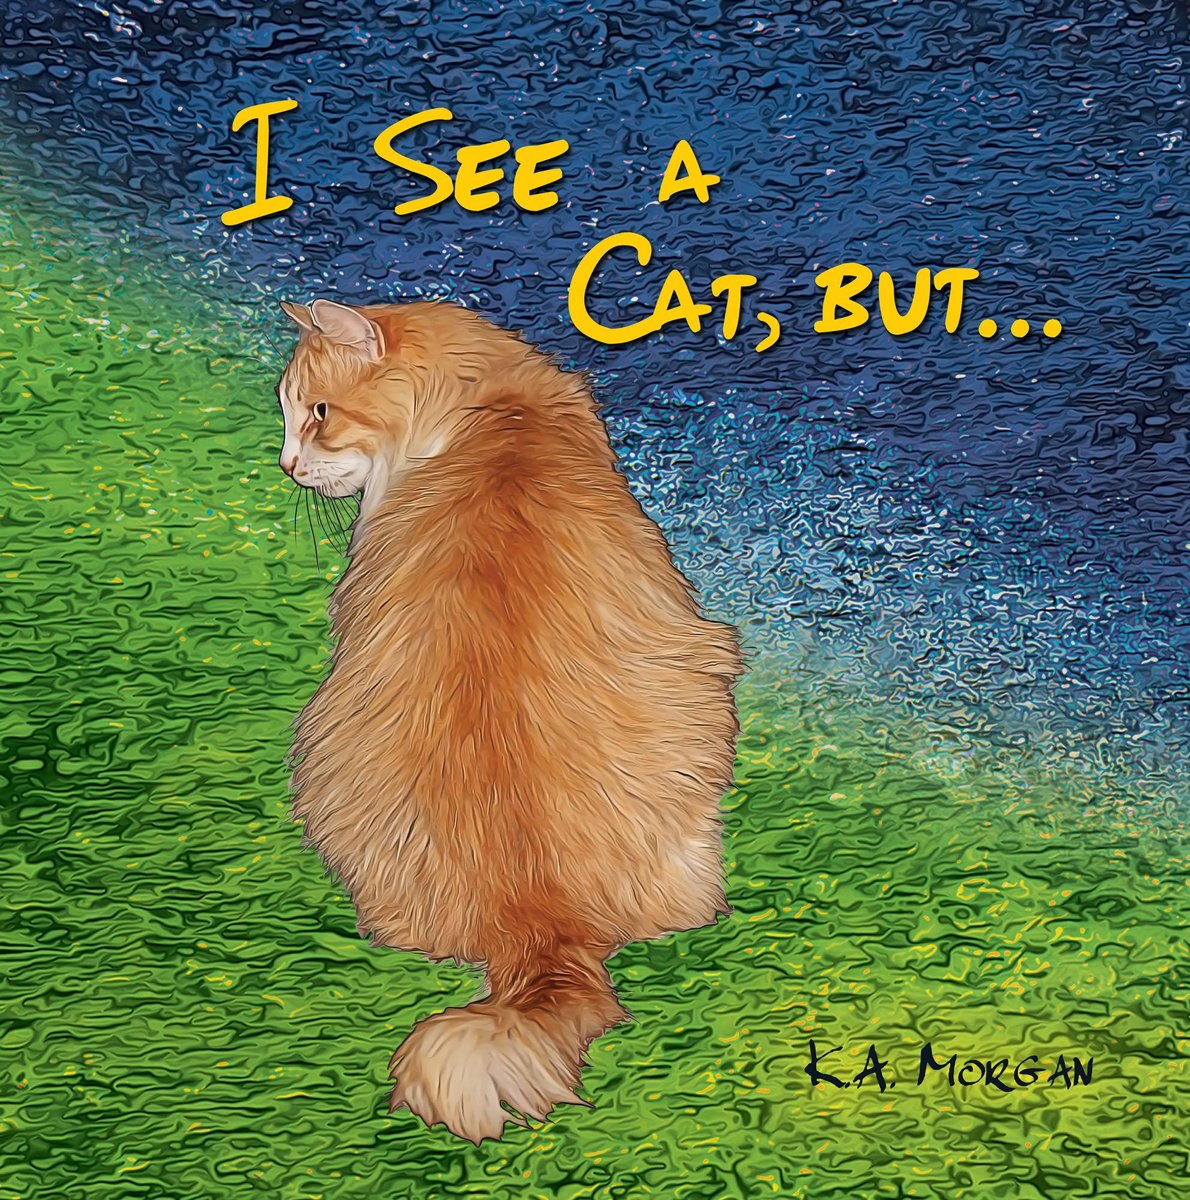 I See a Cat, but...